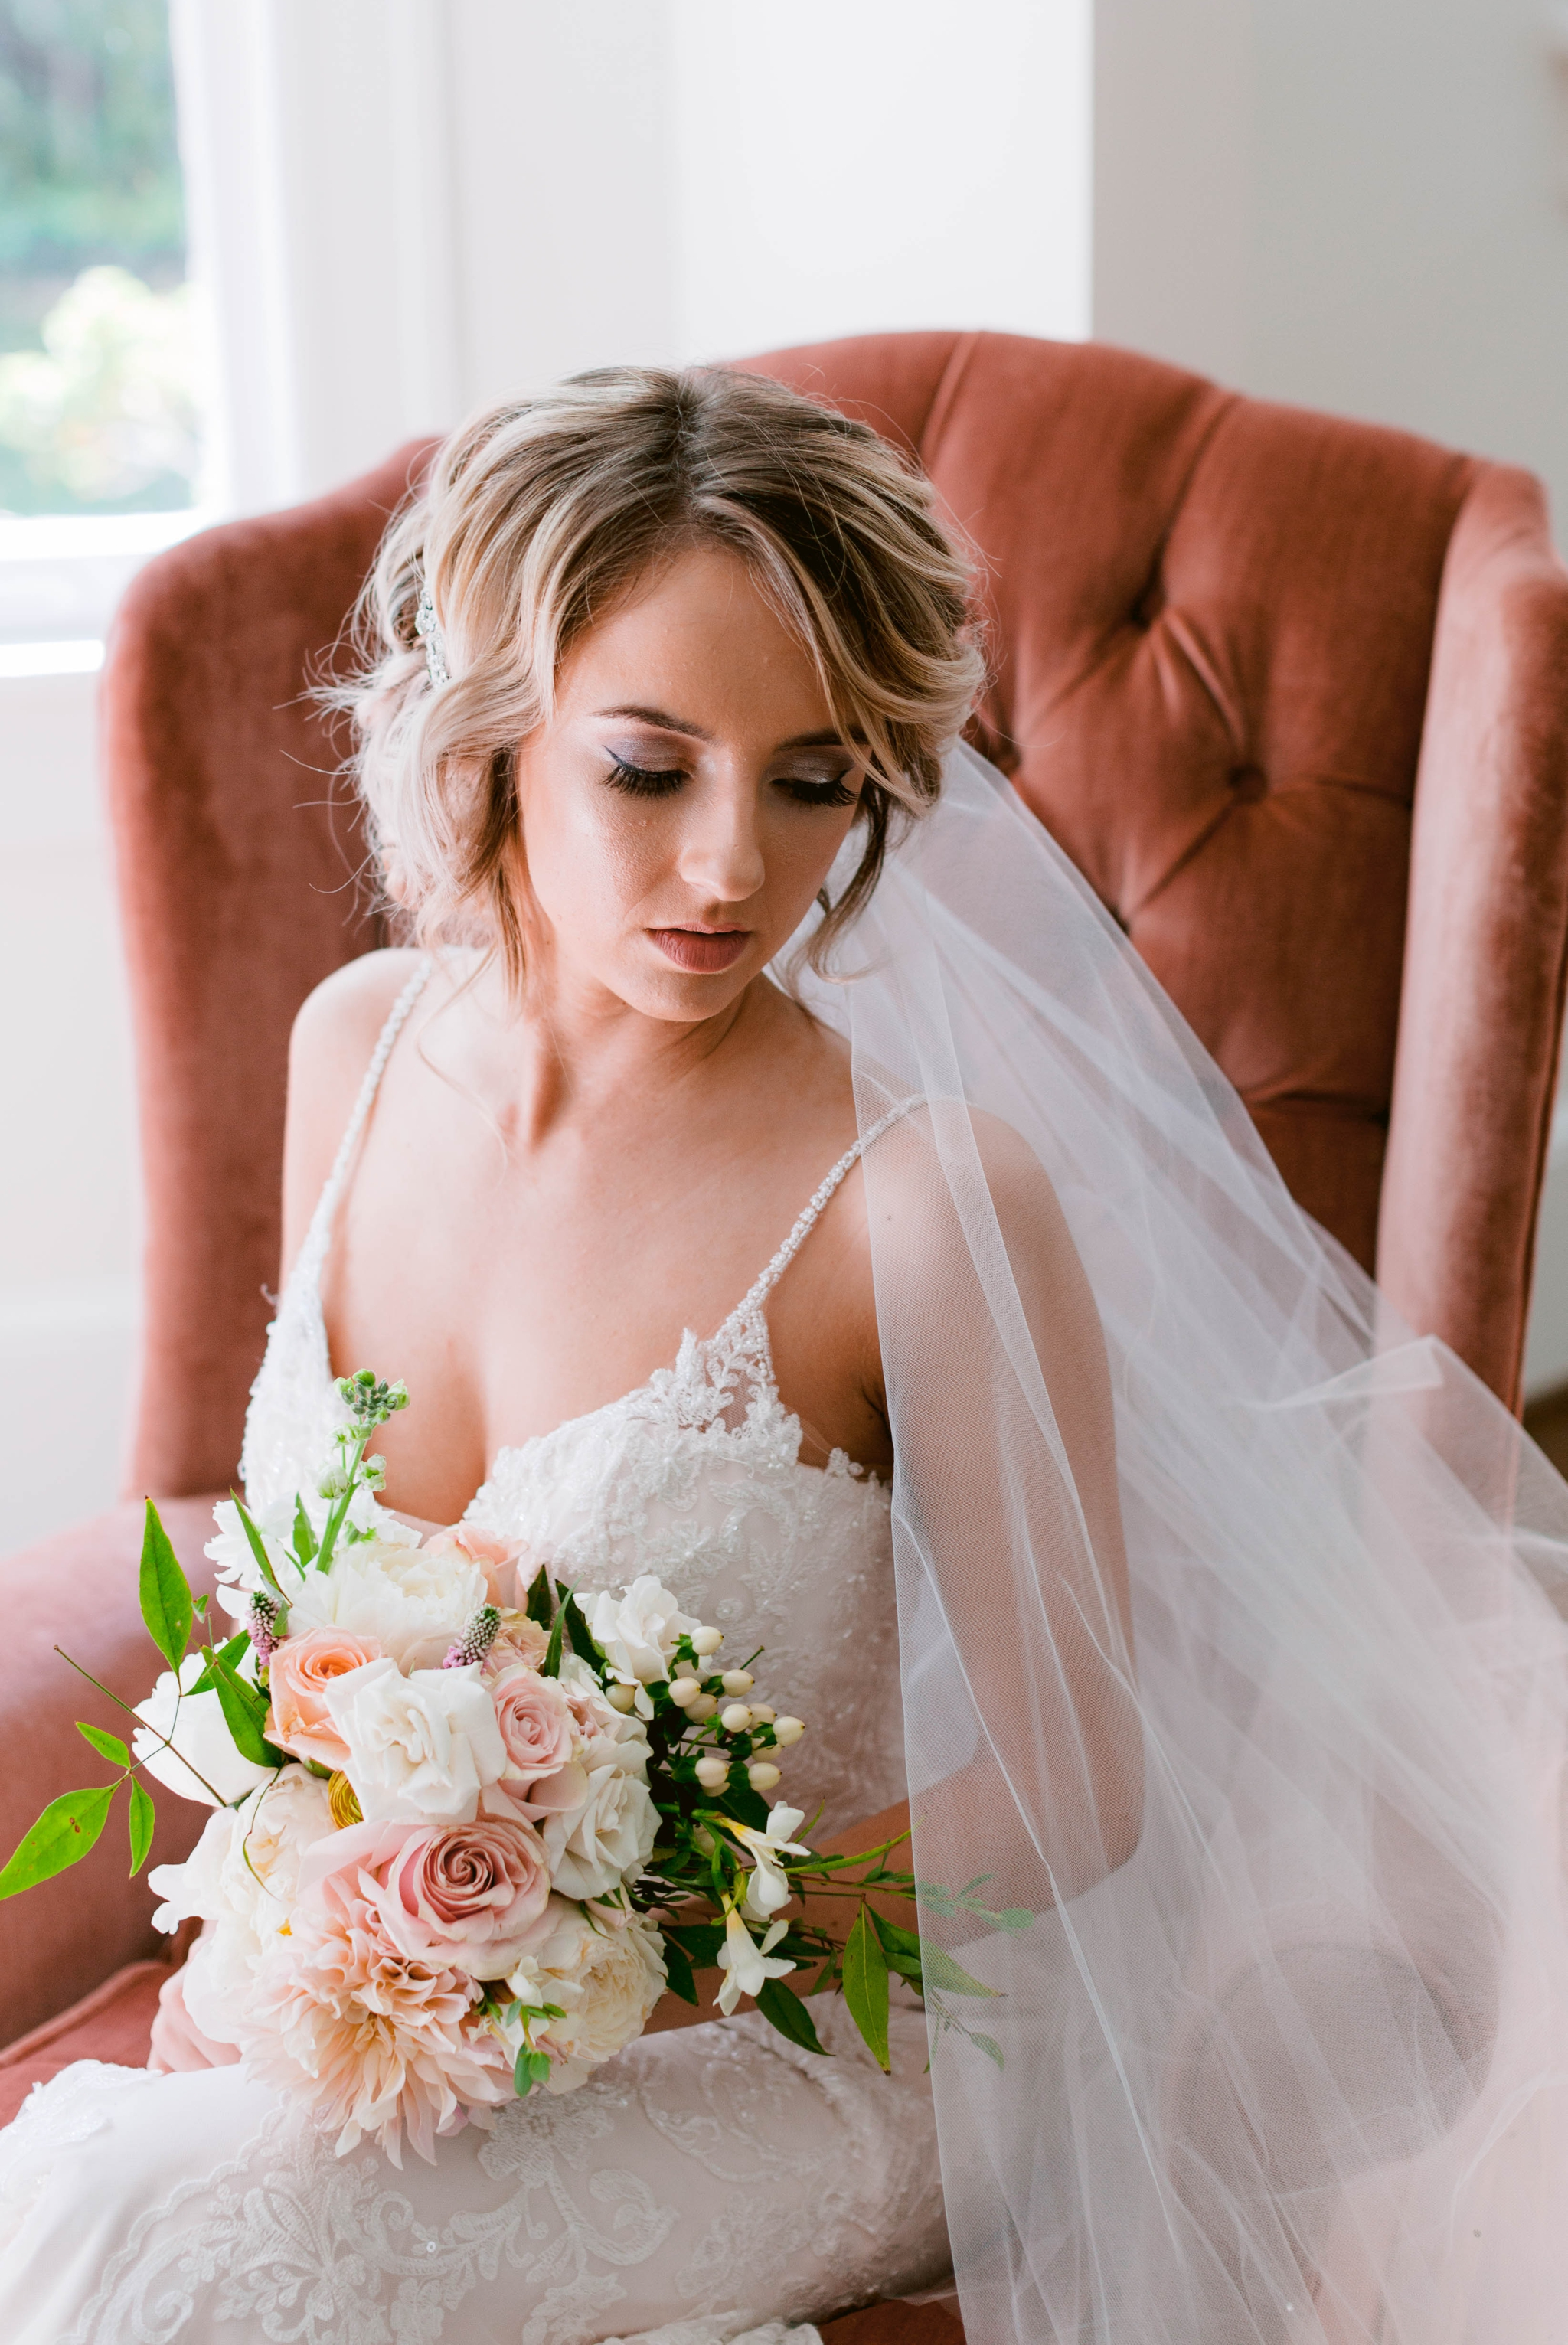 Allison Howell - Indoor Natural Light Bridal Portraits by a window with a white backdrop - classic bride - Honolulu, Oahu, Hawaii Wedding Photographer